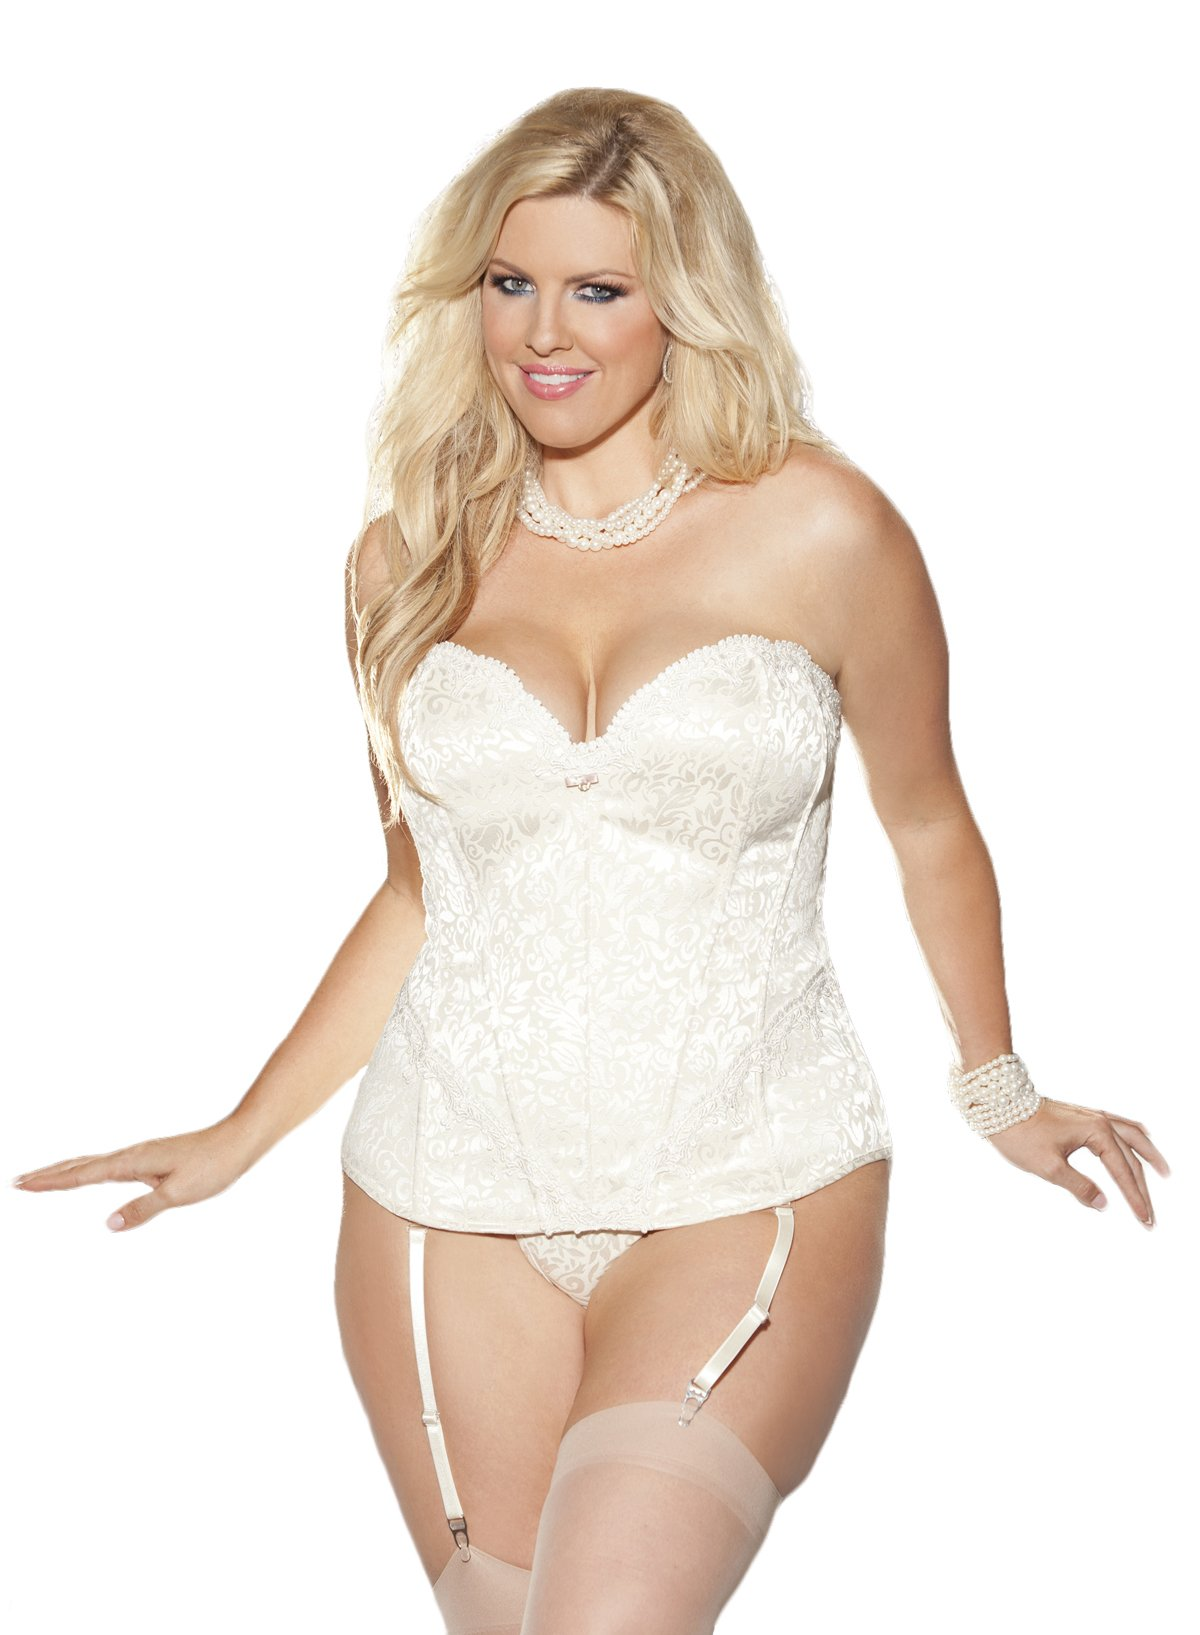 Shirley of Hollywood Women's Plus-Size Tapestry Gartered Corset with G-String, Ivory, Size 44